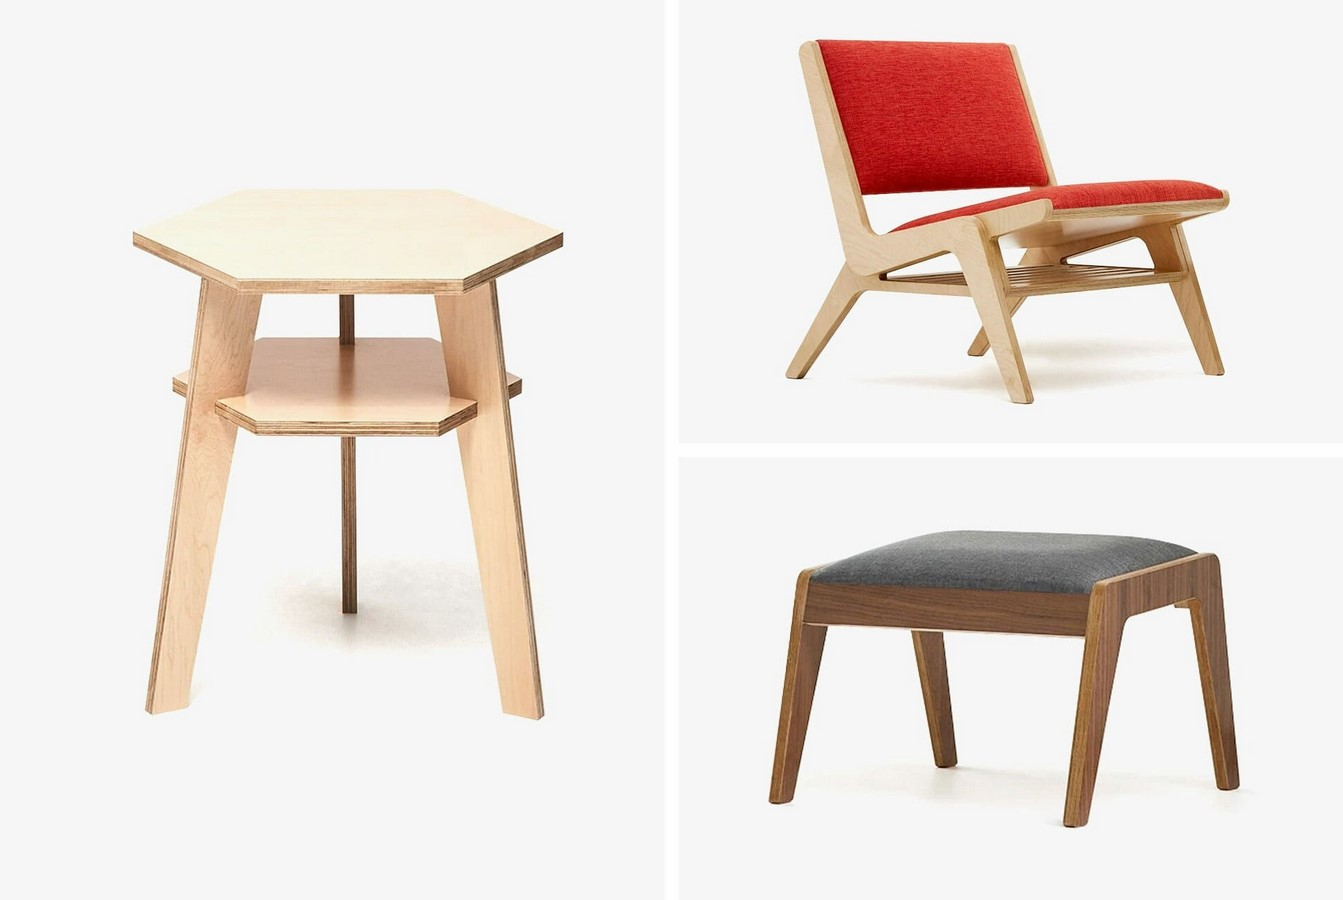 10 most influential Product Designers of all time - Sheet10